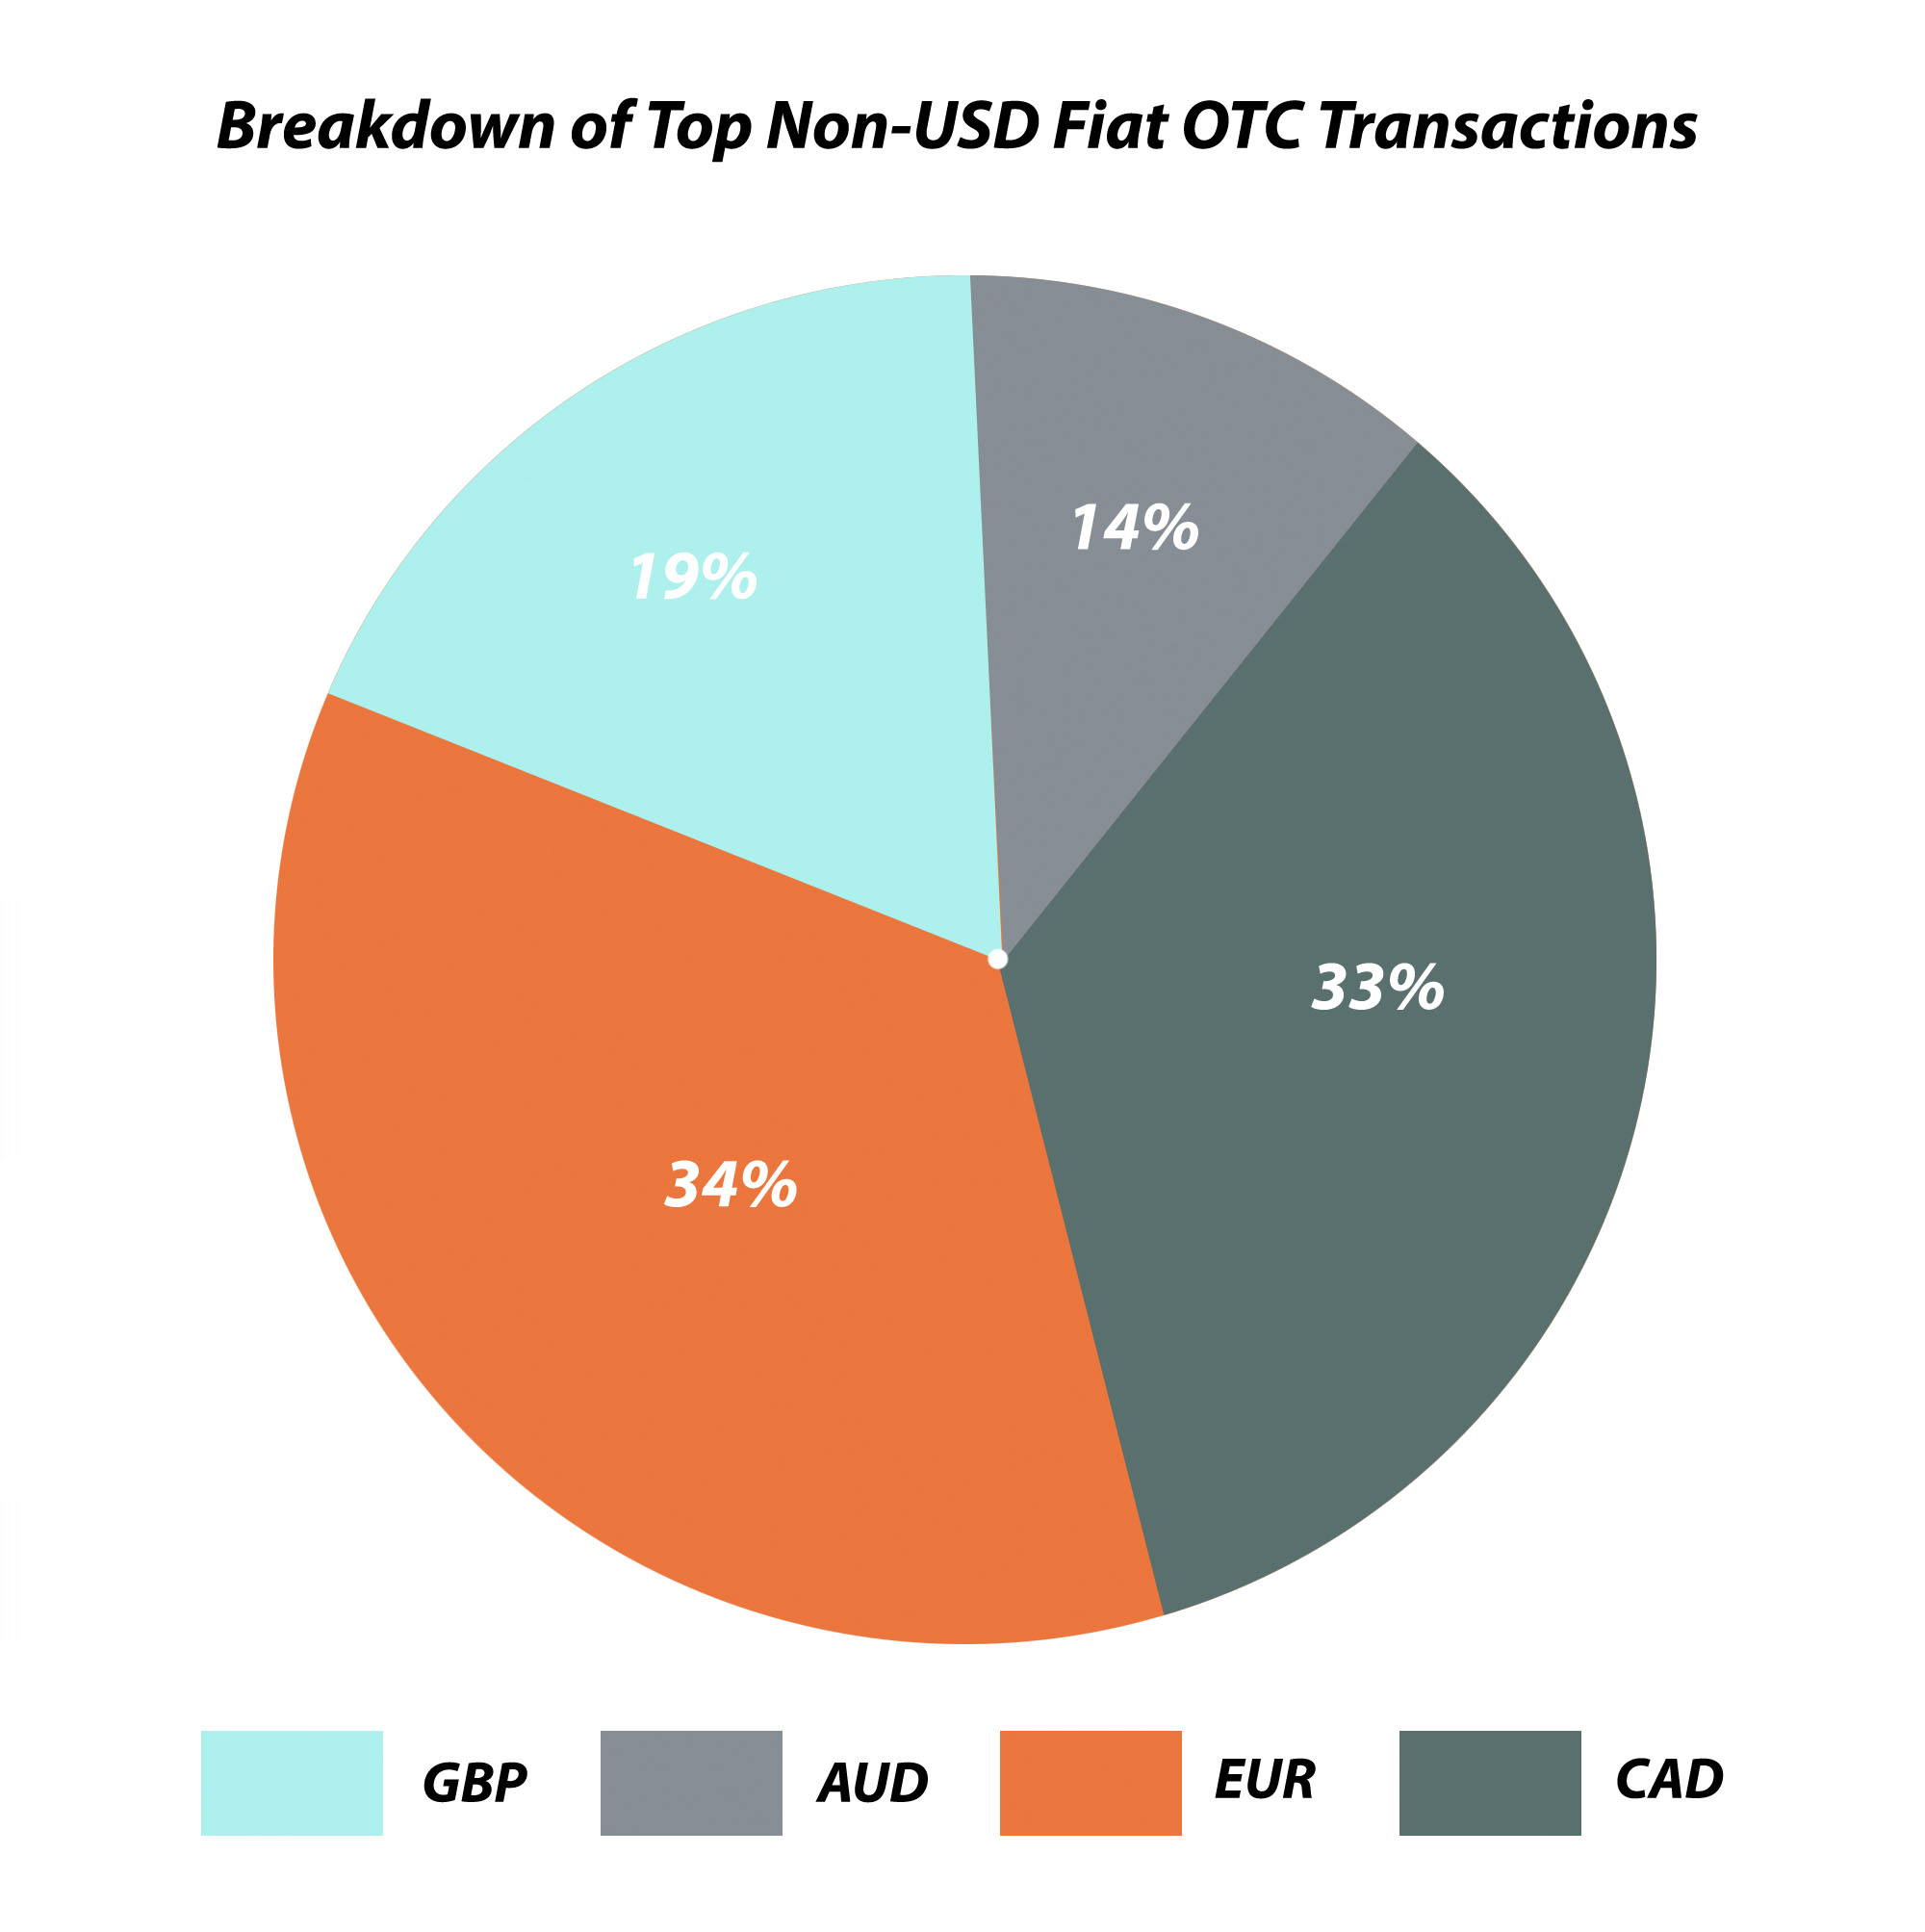 Distribution of shares of fiat currencies within the OTC transactions